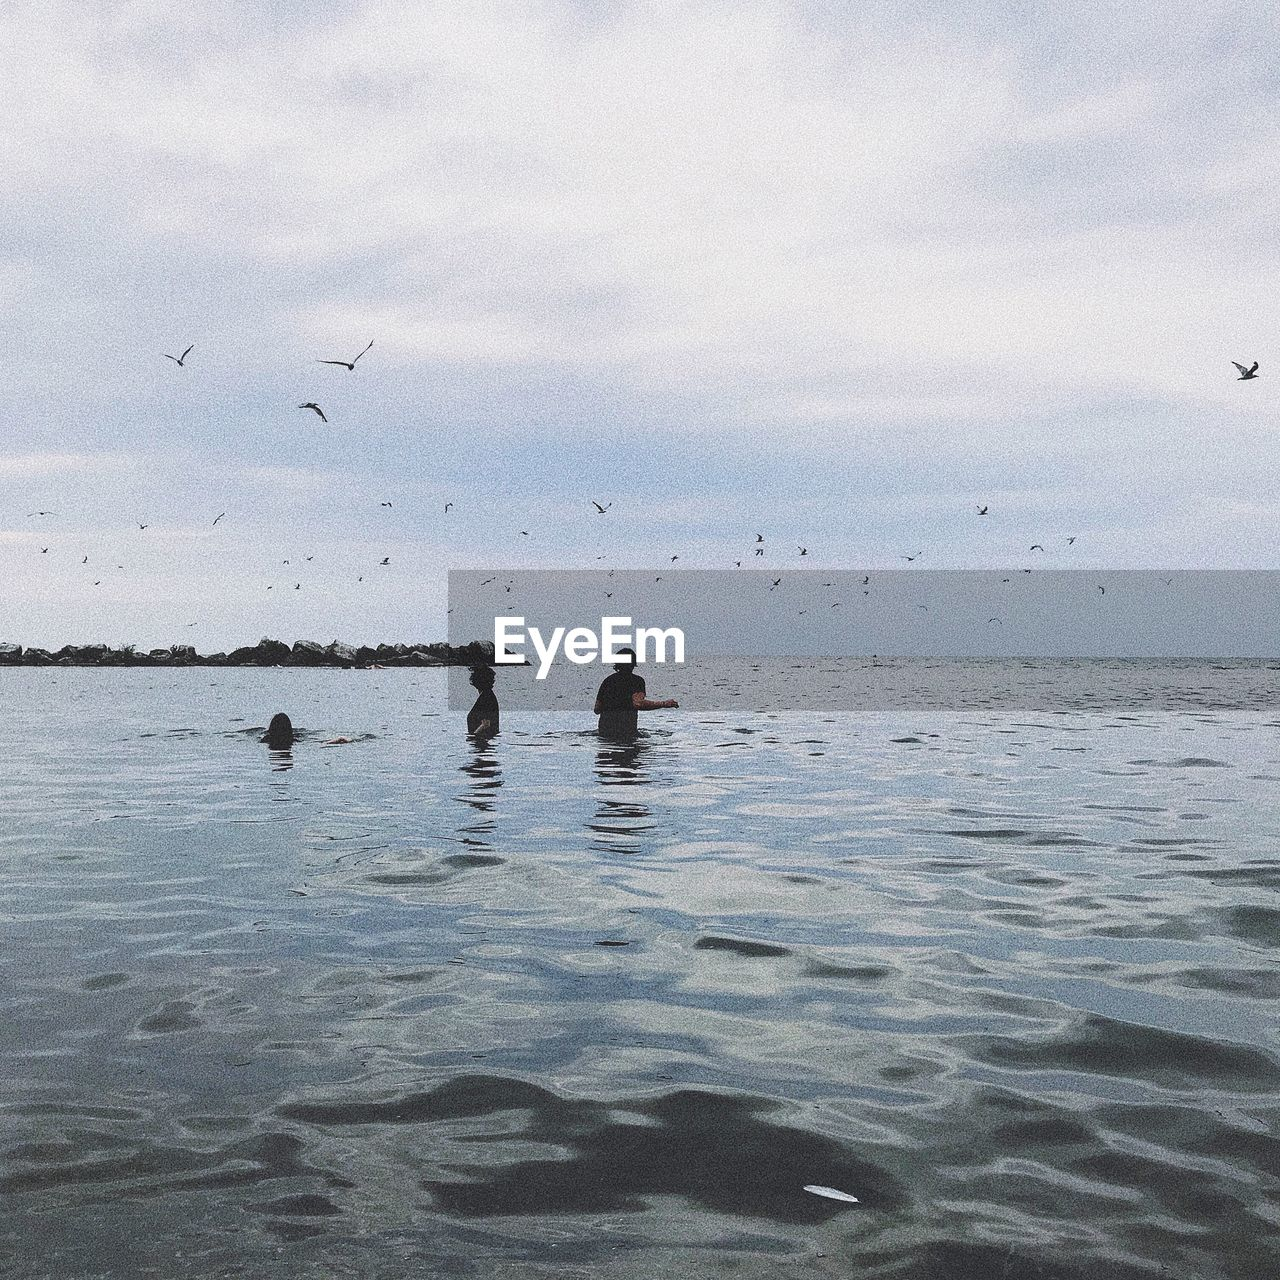 water, sky, sea, cloud - sky, vertebrate, group of animals, bird, horizon over water, waterfront, beauty in nature, animal themes, nature, animal wildlife, horizon, scenics - nature, animal, animals in the wild, tranquility, flying, flock of birds, outdoors